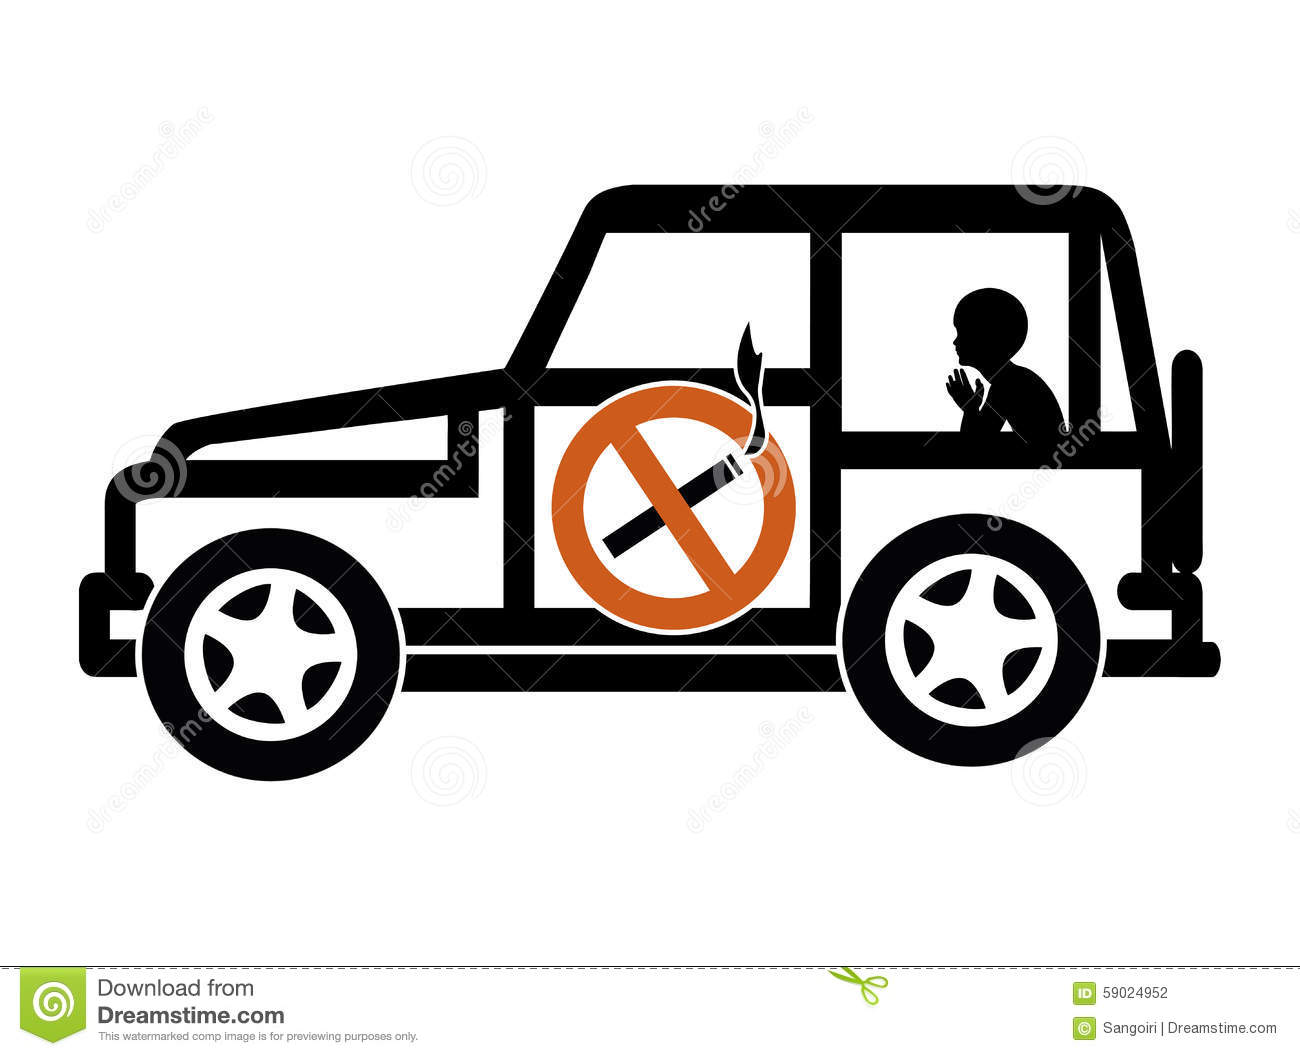 Ban Smoking In Cars With Minors Stock Illustration - Illustration of ...